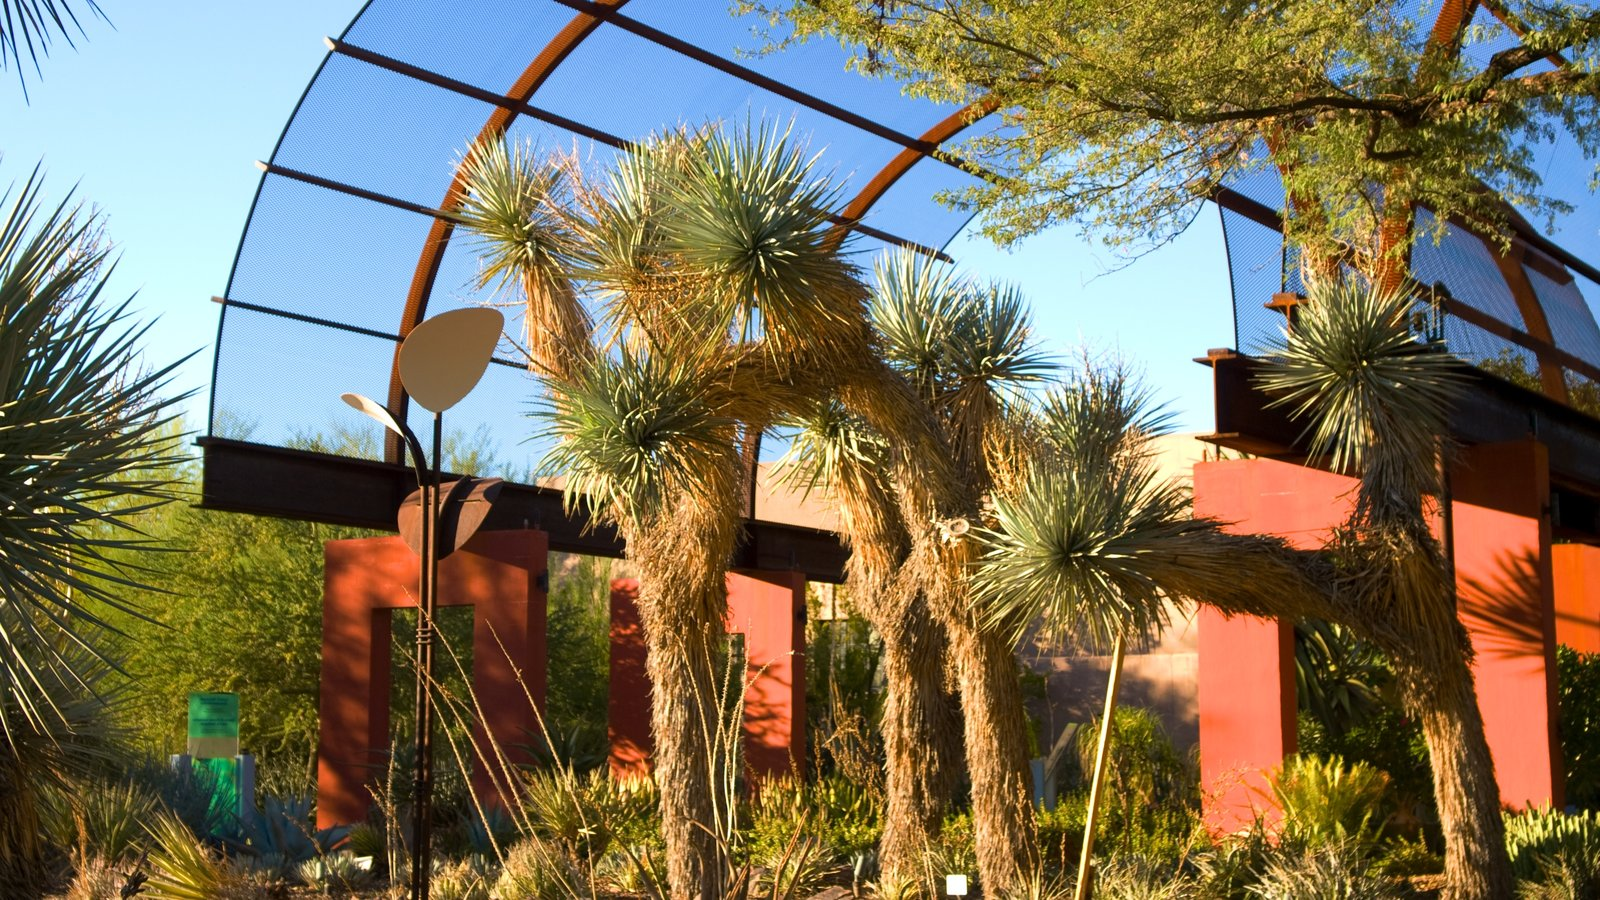 Gardens & Parks Pictures: View Images of Phoenix